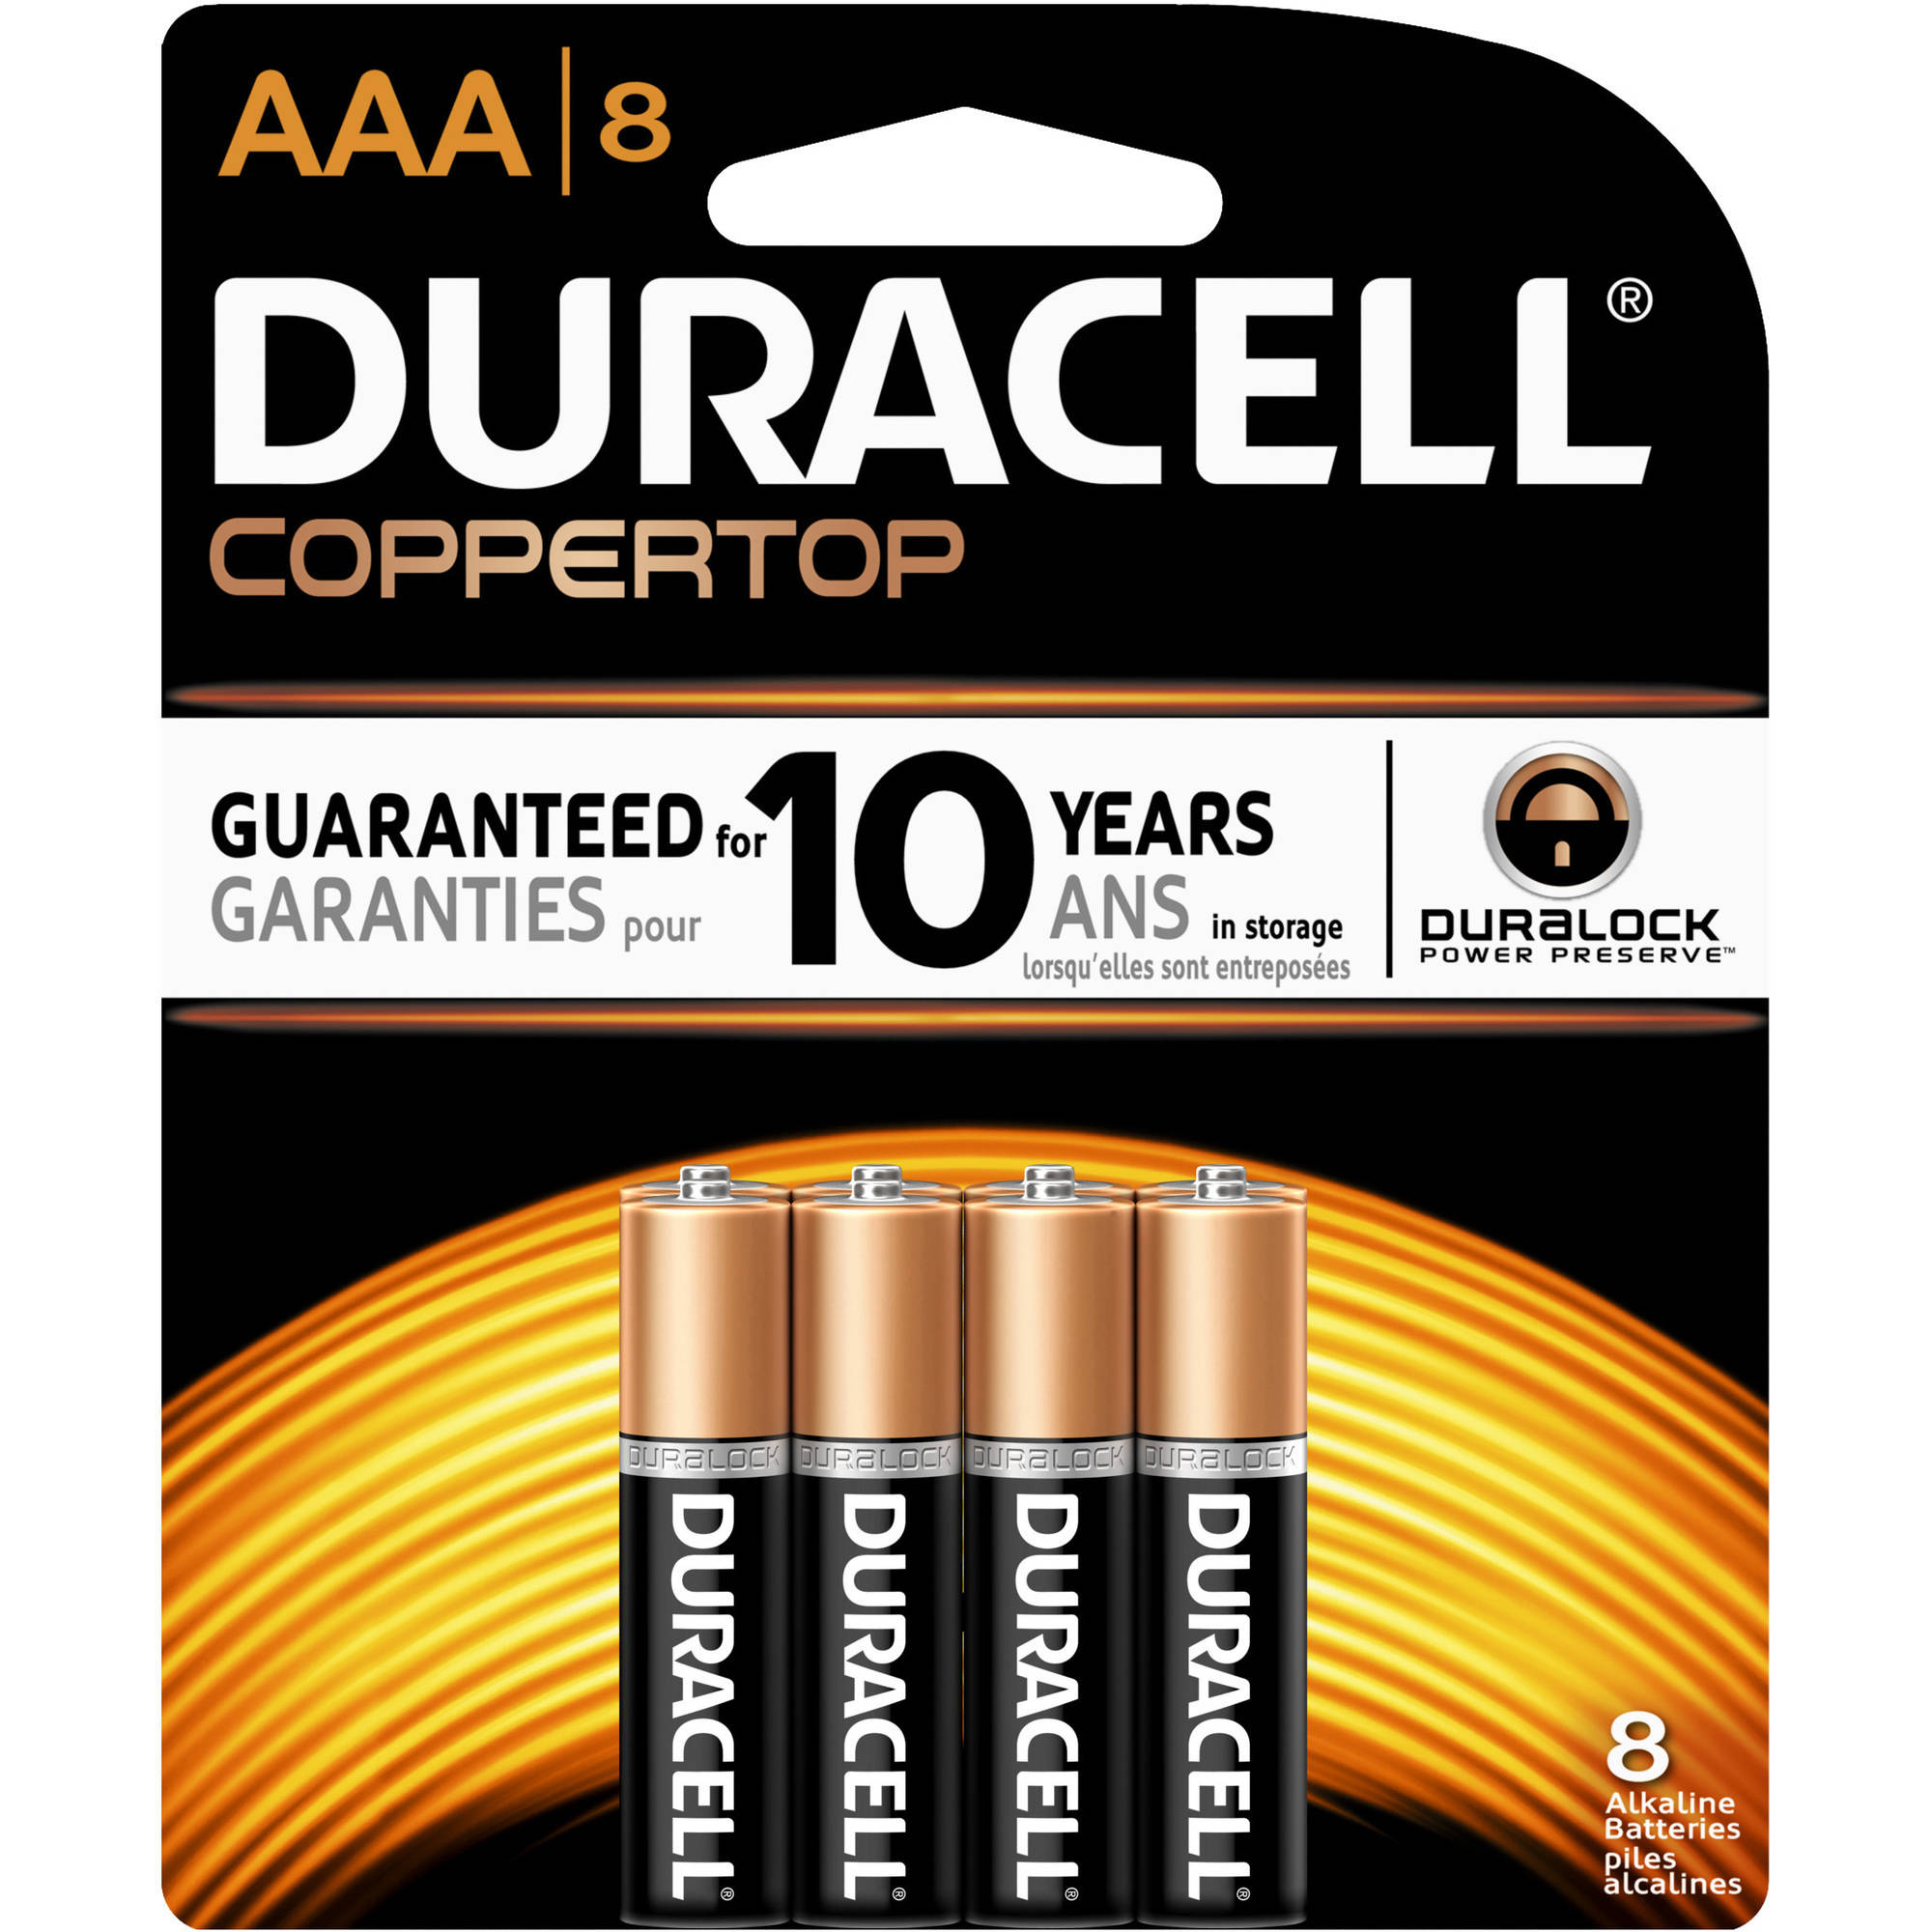 Duracell Coppertop AAA Batteries, 8 count